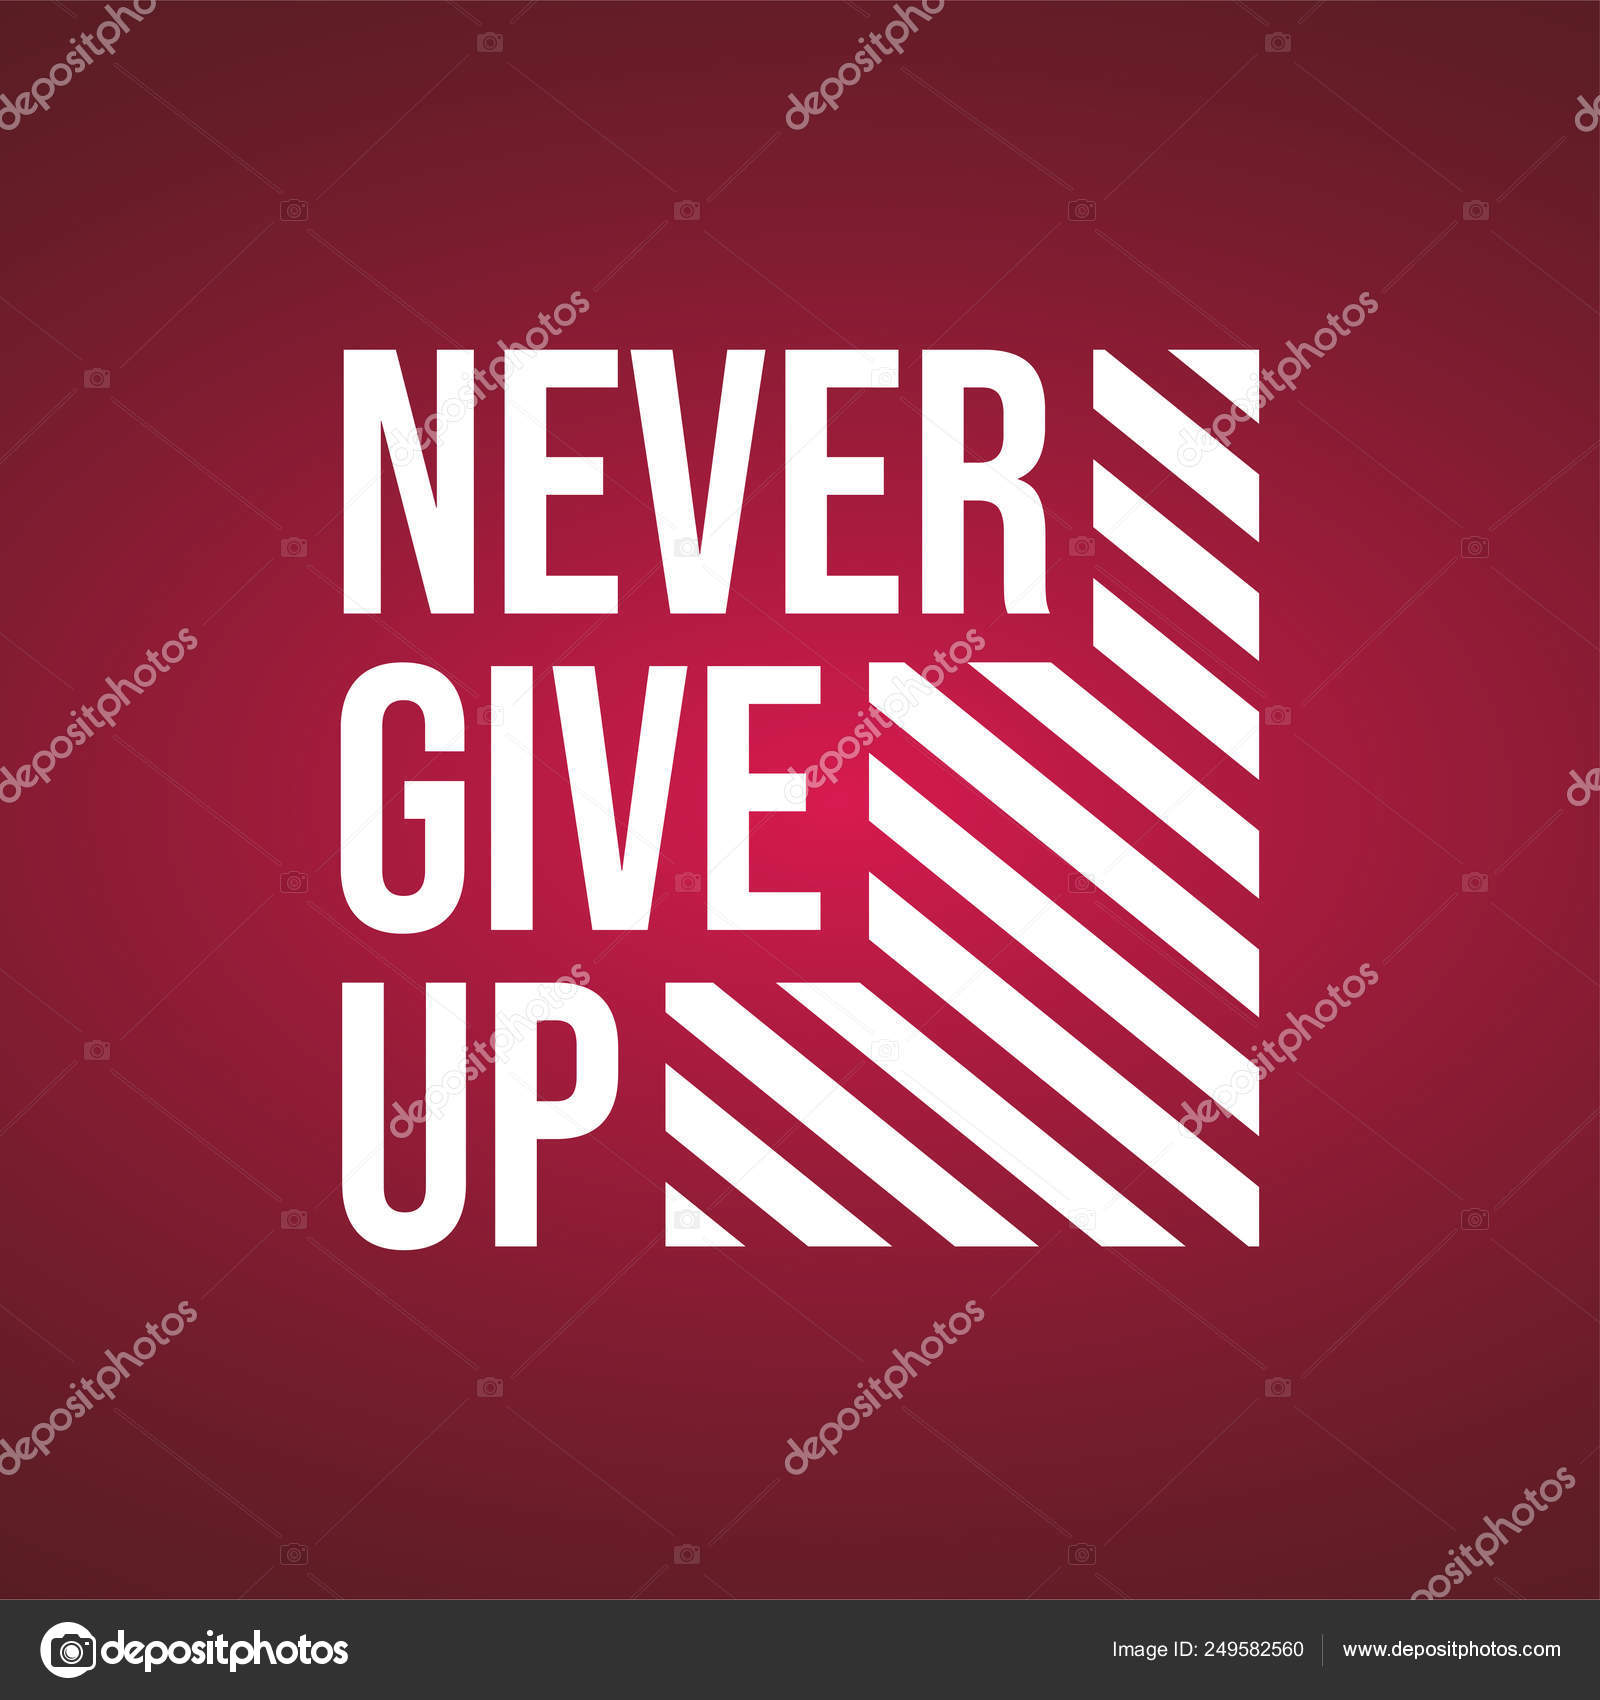 Never give up Life quote with modern background vector